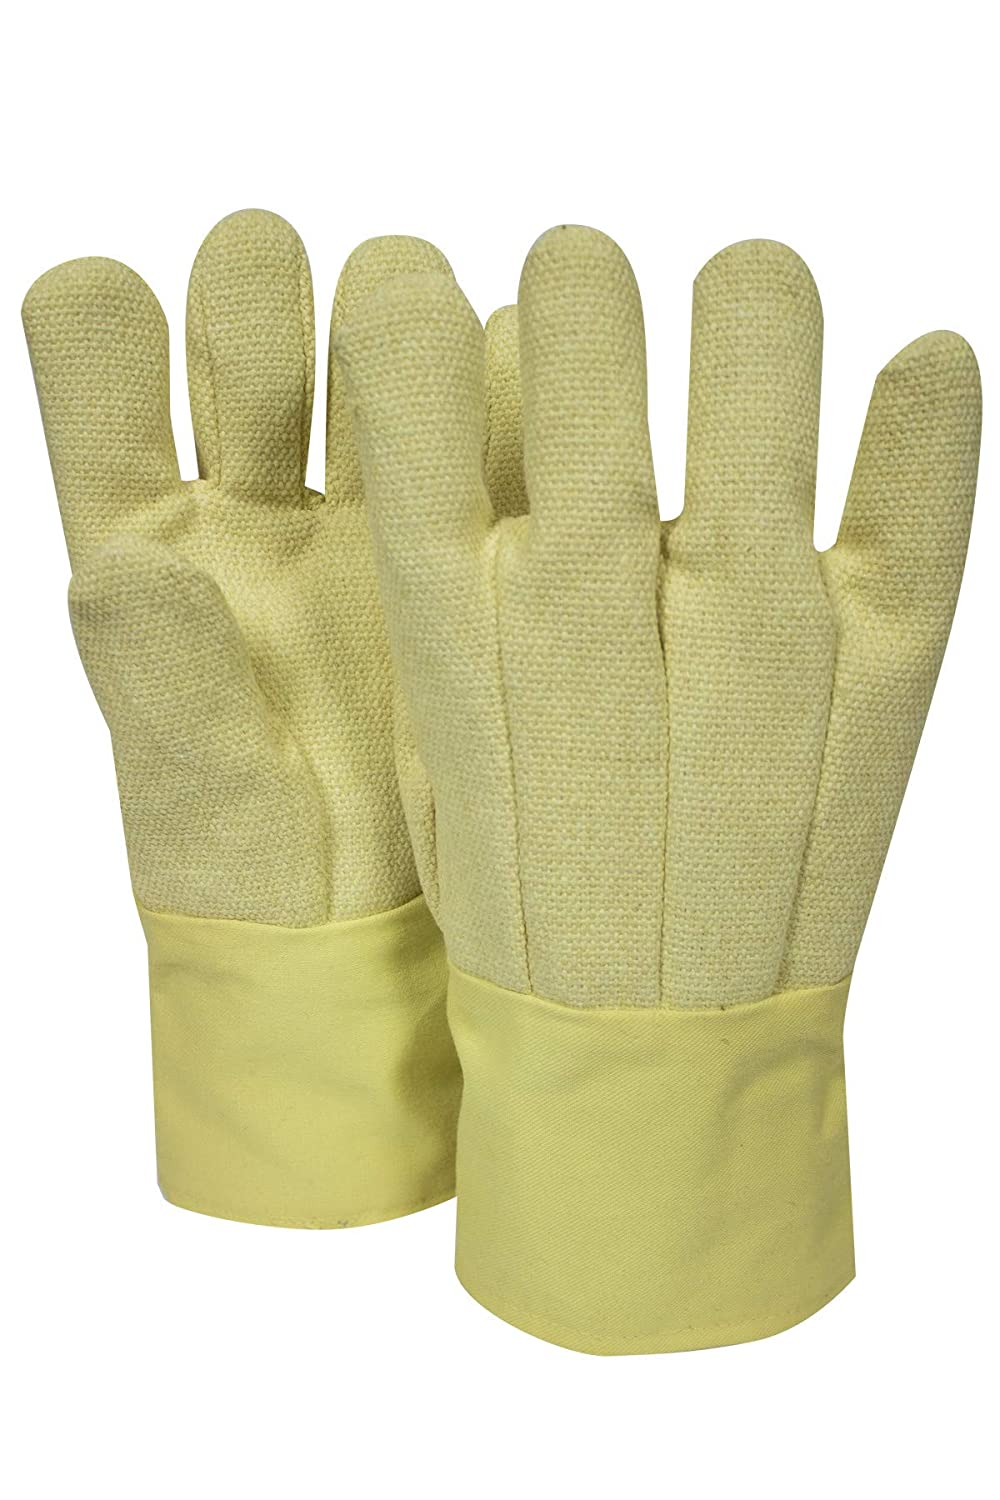 National Safety Max 74% OFF Apparel G51TCVB14 Max 47% OFF Thermobest Kevlar C Glove with